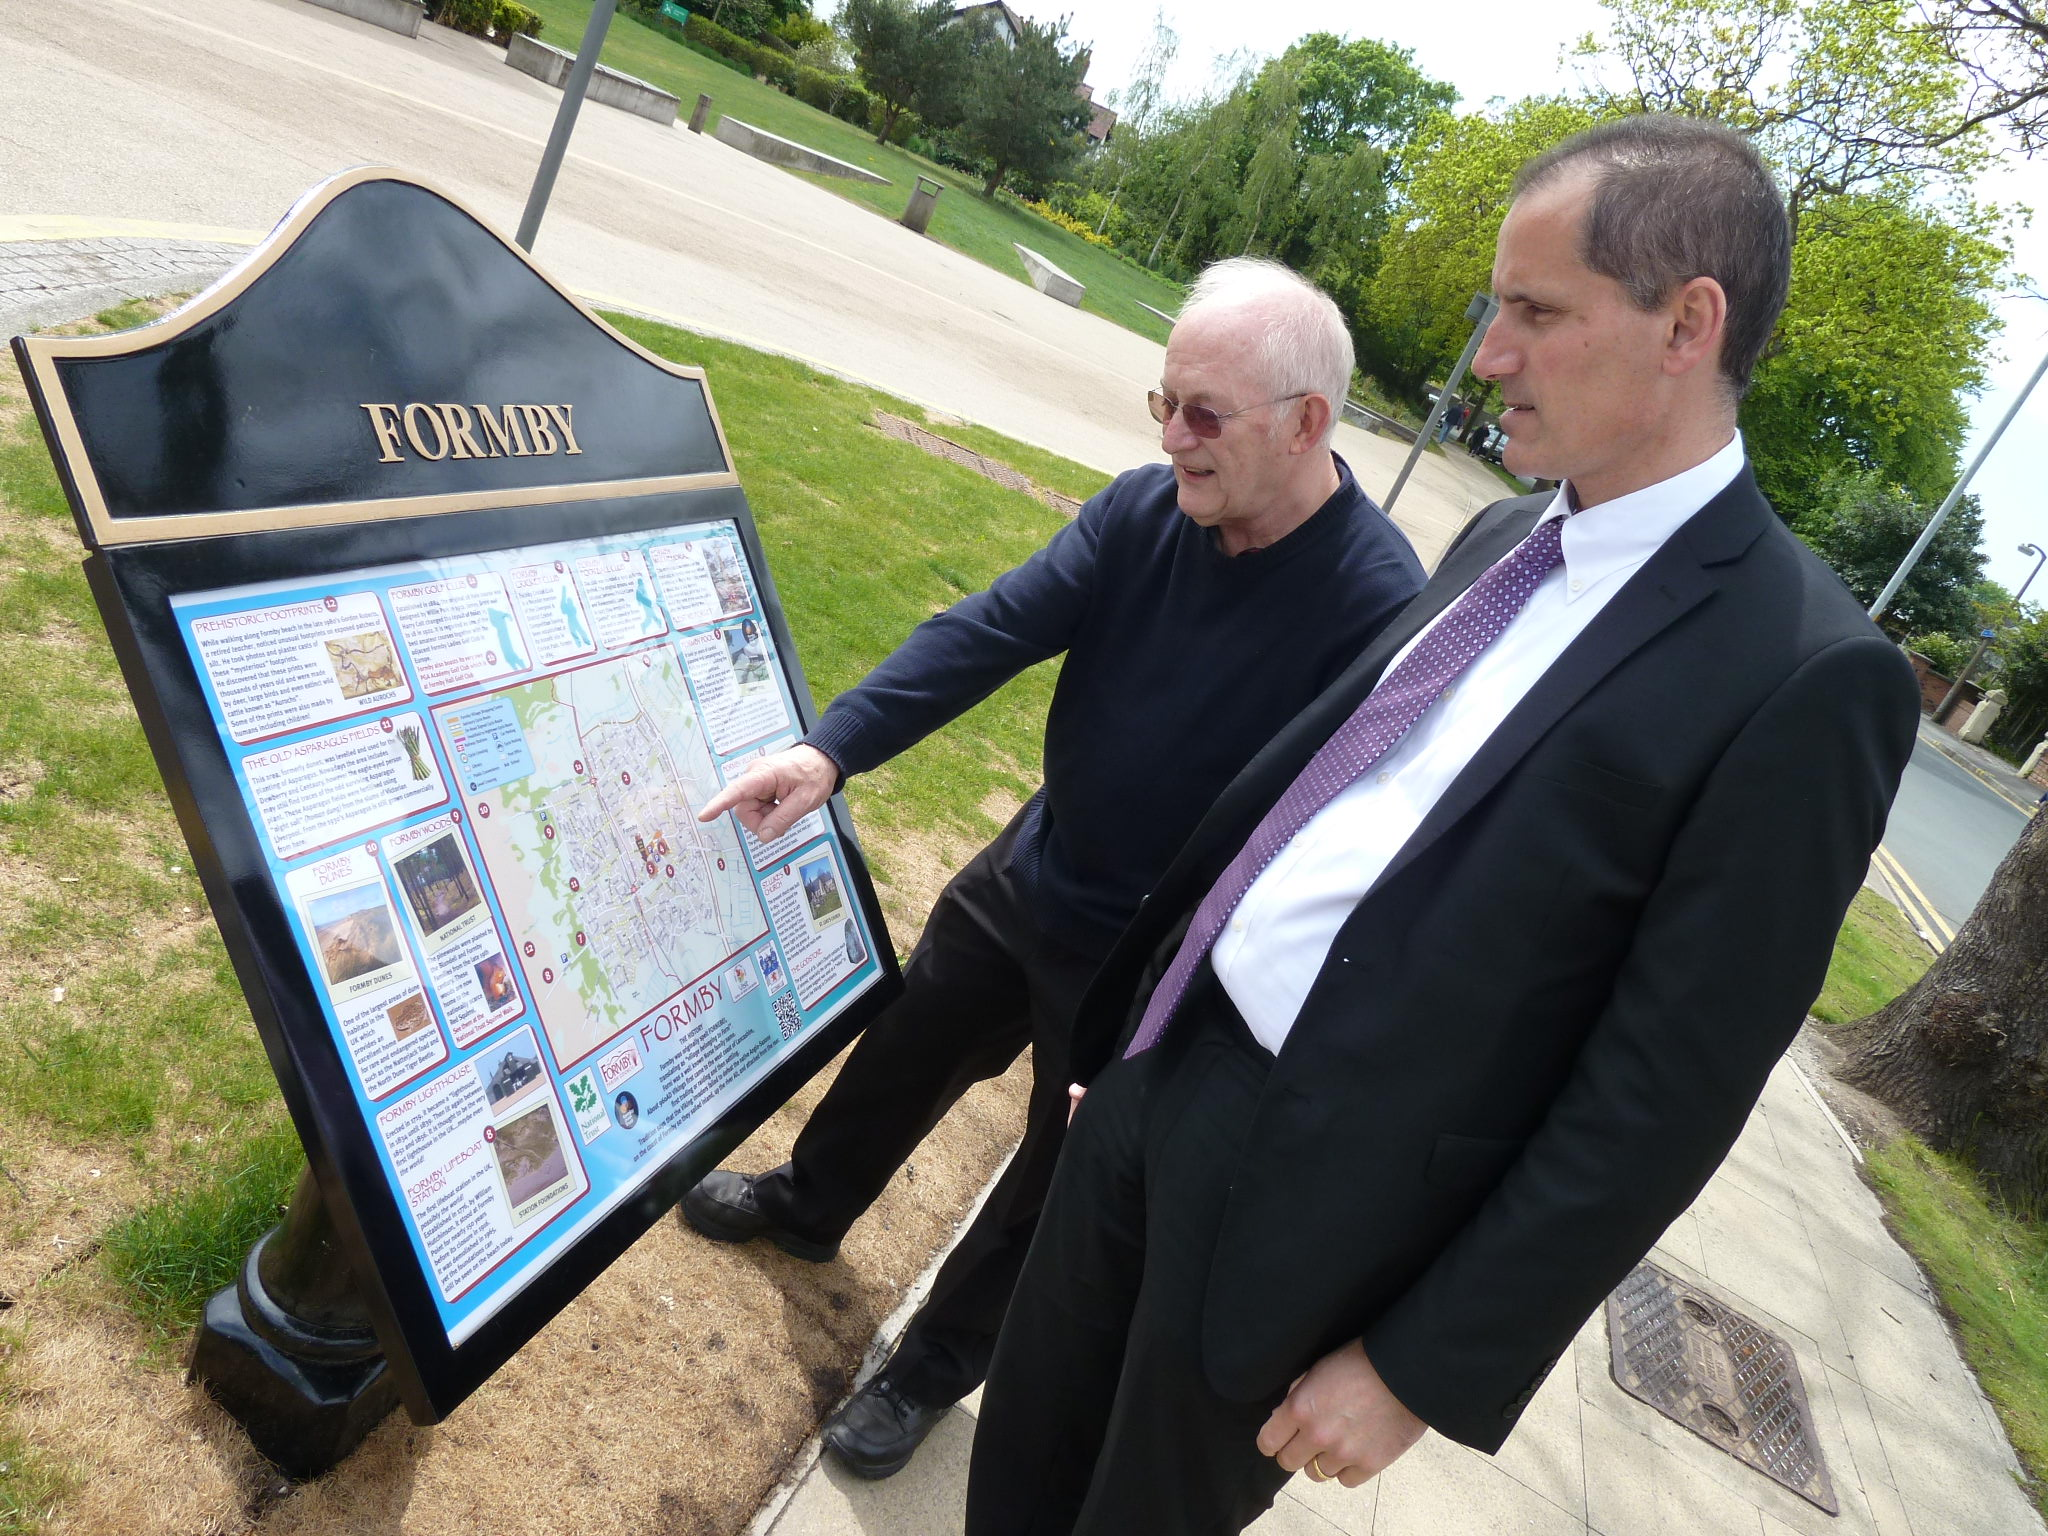 Sefton Central Labour MP Bill Esterson is shown the new information boards in Formby Village by Formby Parish Councillor Geoff Gaskin.